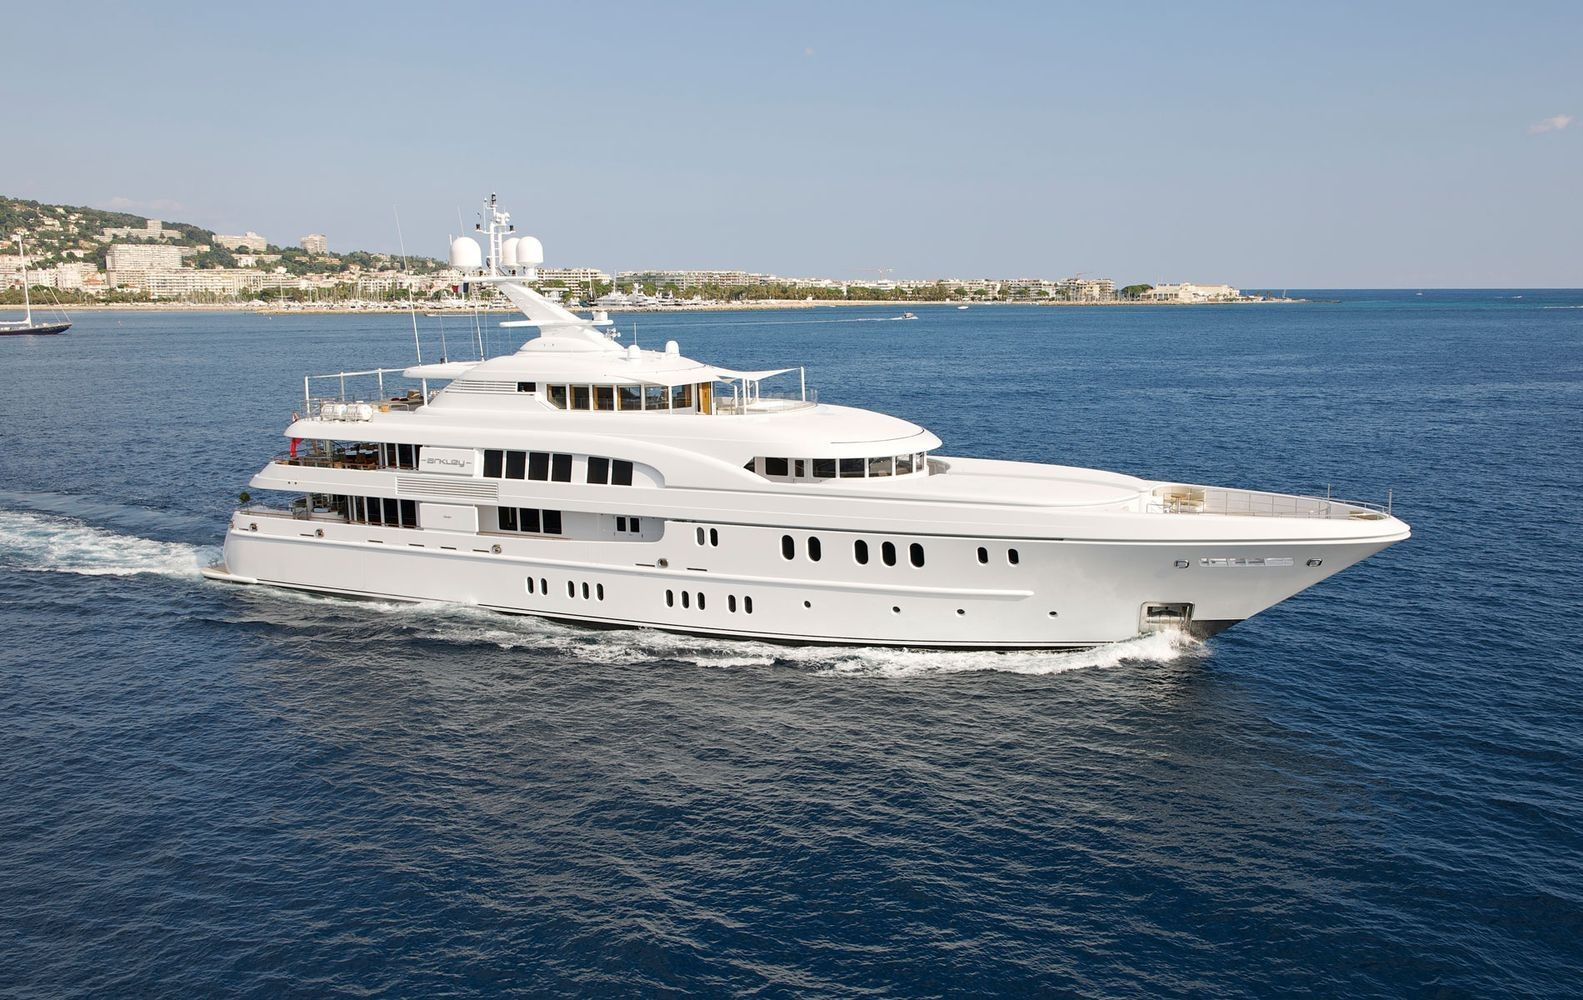 Luxury Yacht for charter, Super yacht Arkley our mega yacht On Emporium Yachts